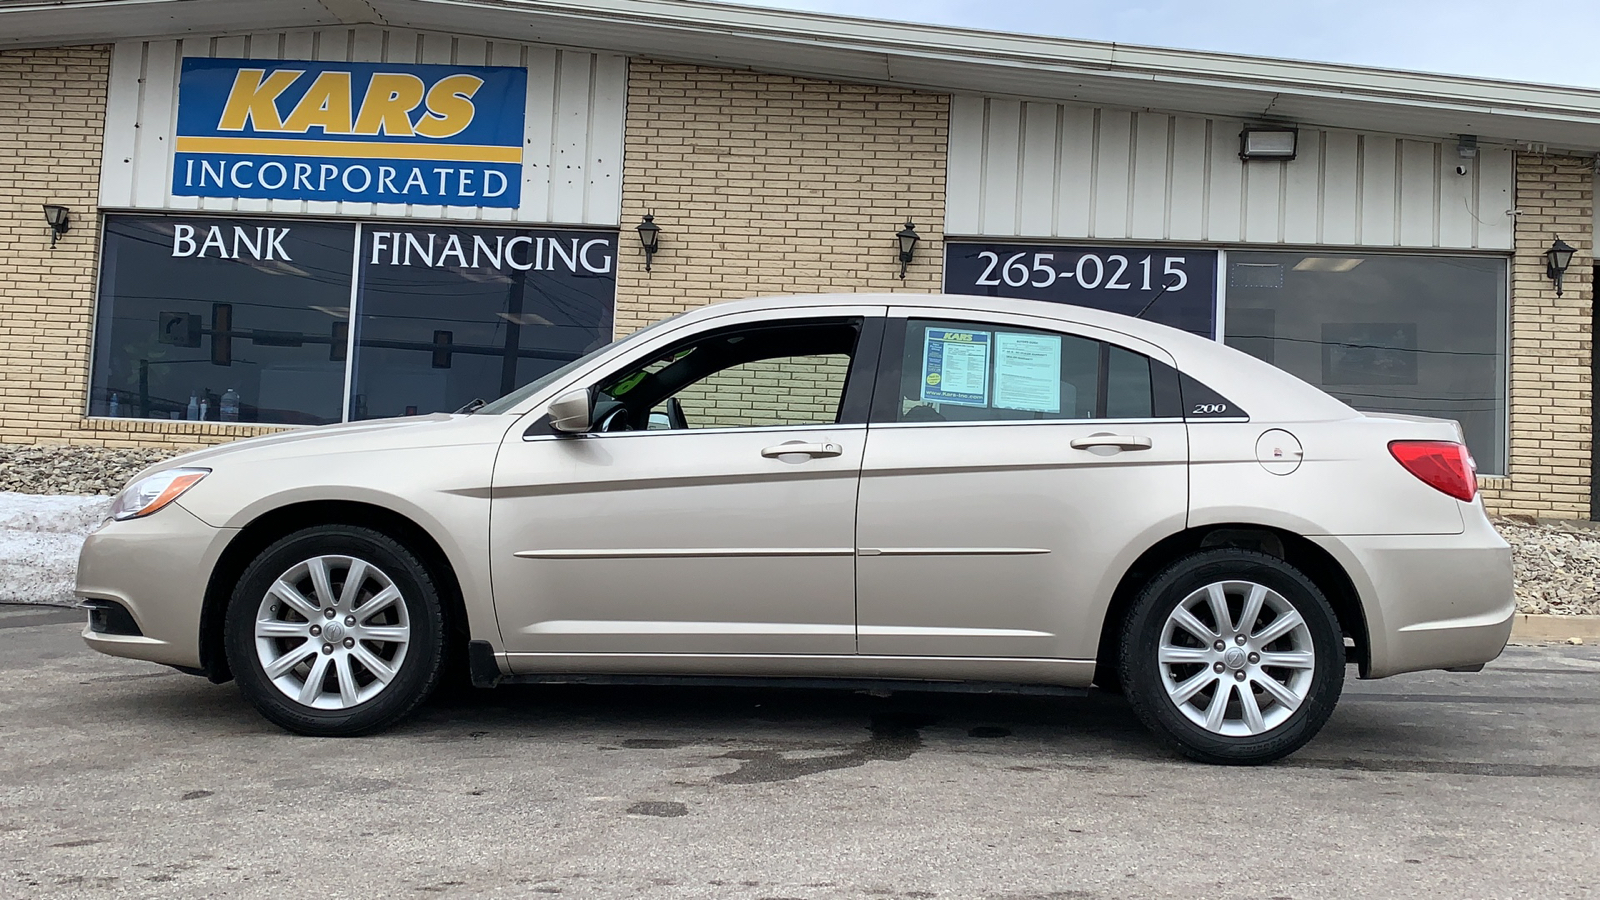 2014 Chrysler 200 TOURING  - E95524D  - Kars Incorporated - DSM